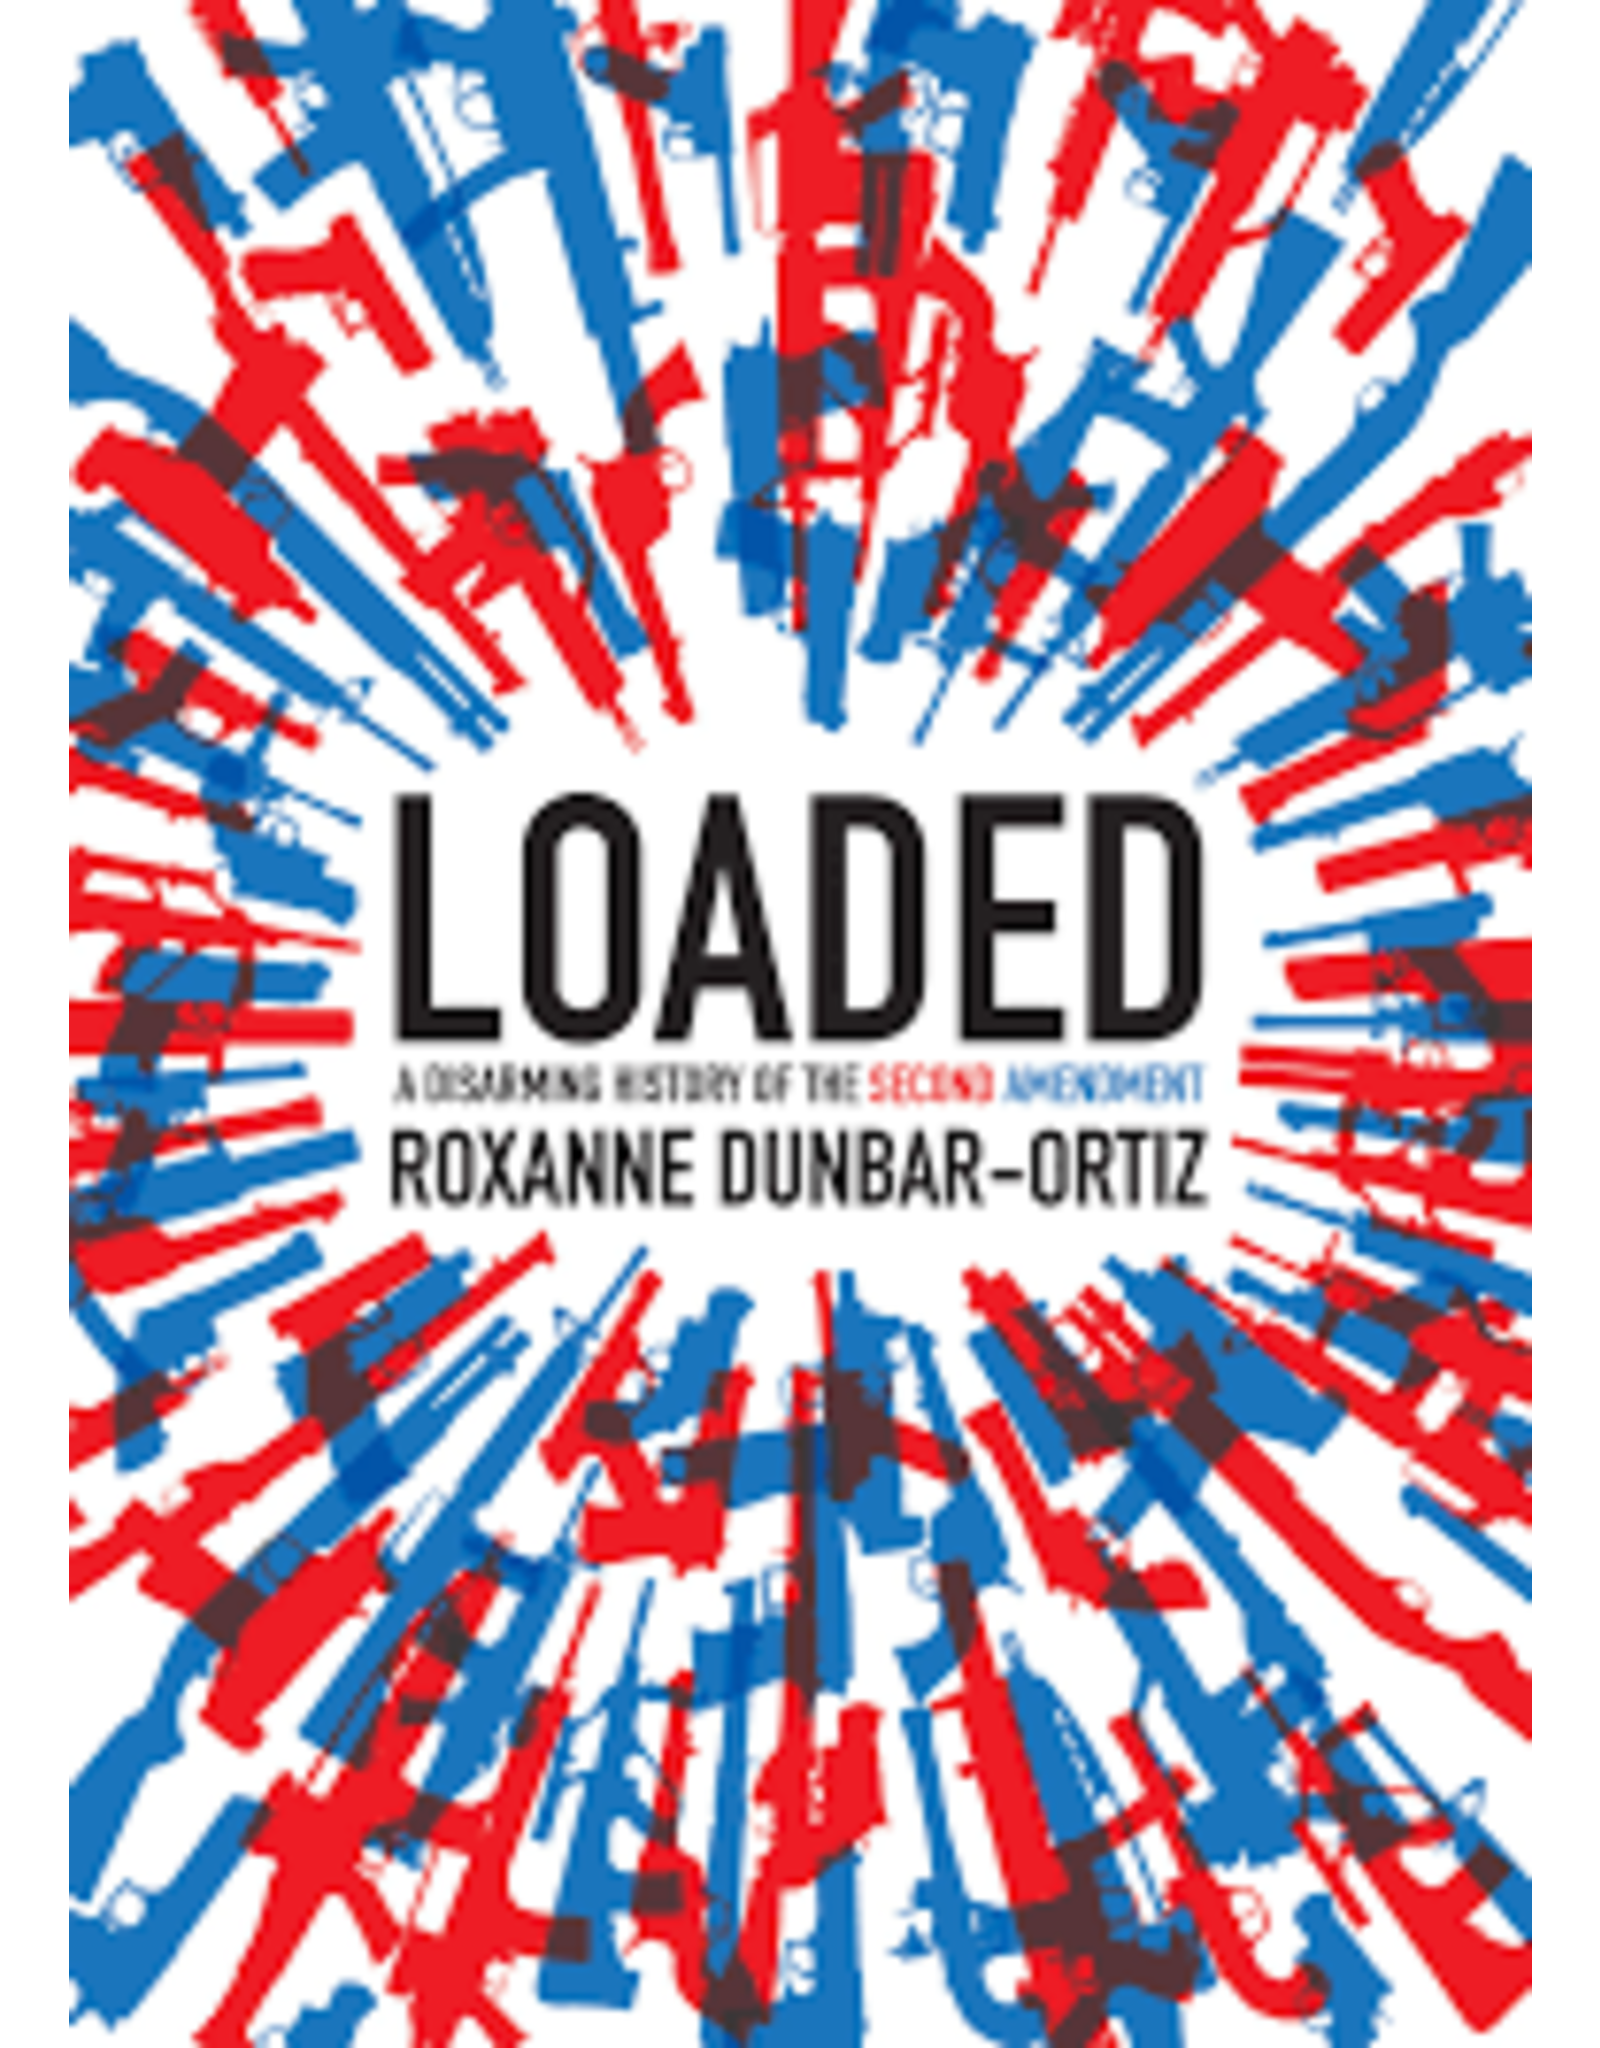 Books Loaded: A Disarming History of the Second Amendment by Roxanne Dunbar-Ortiz